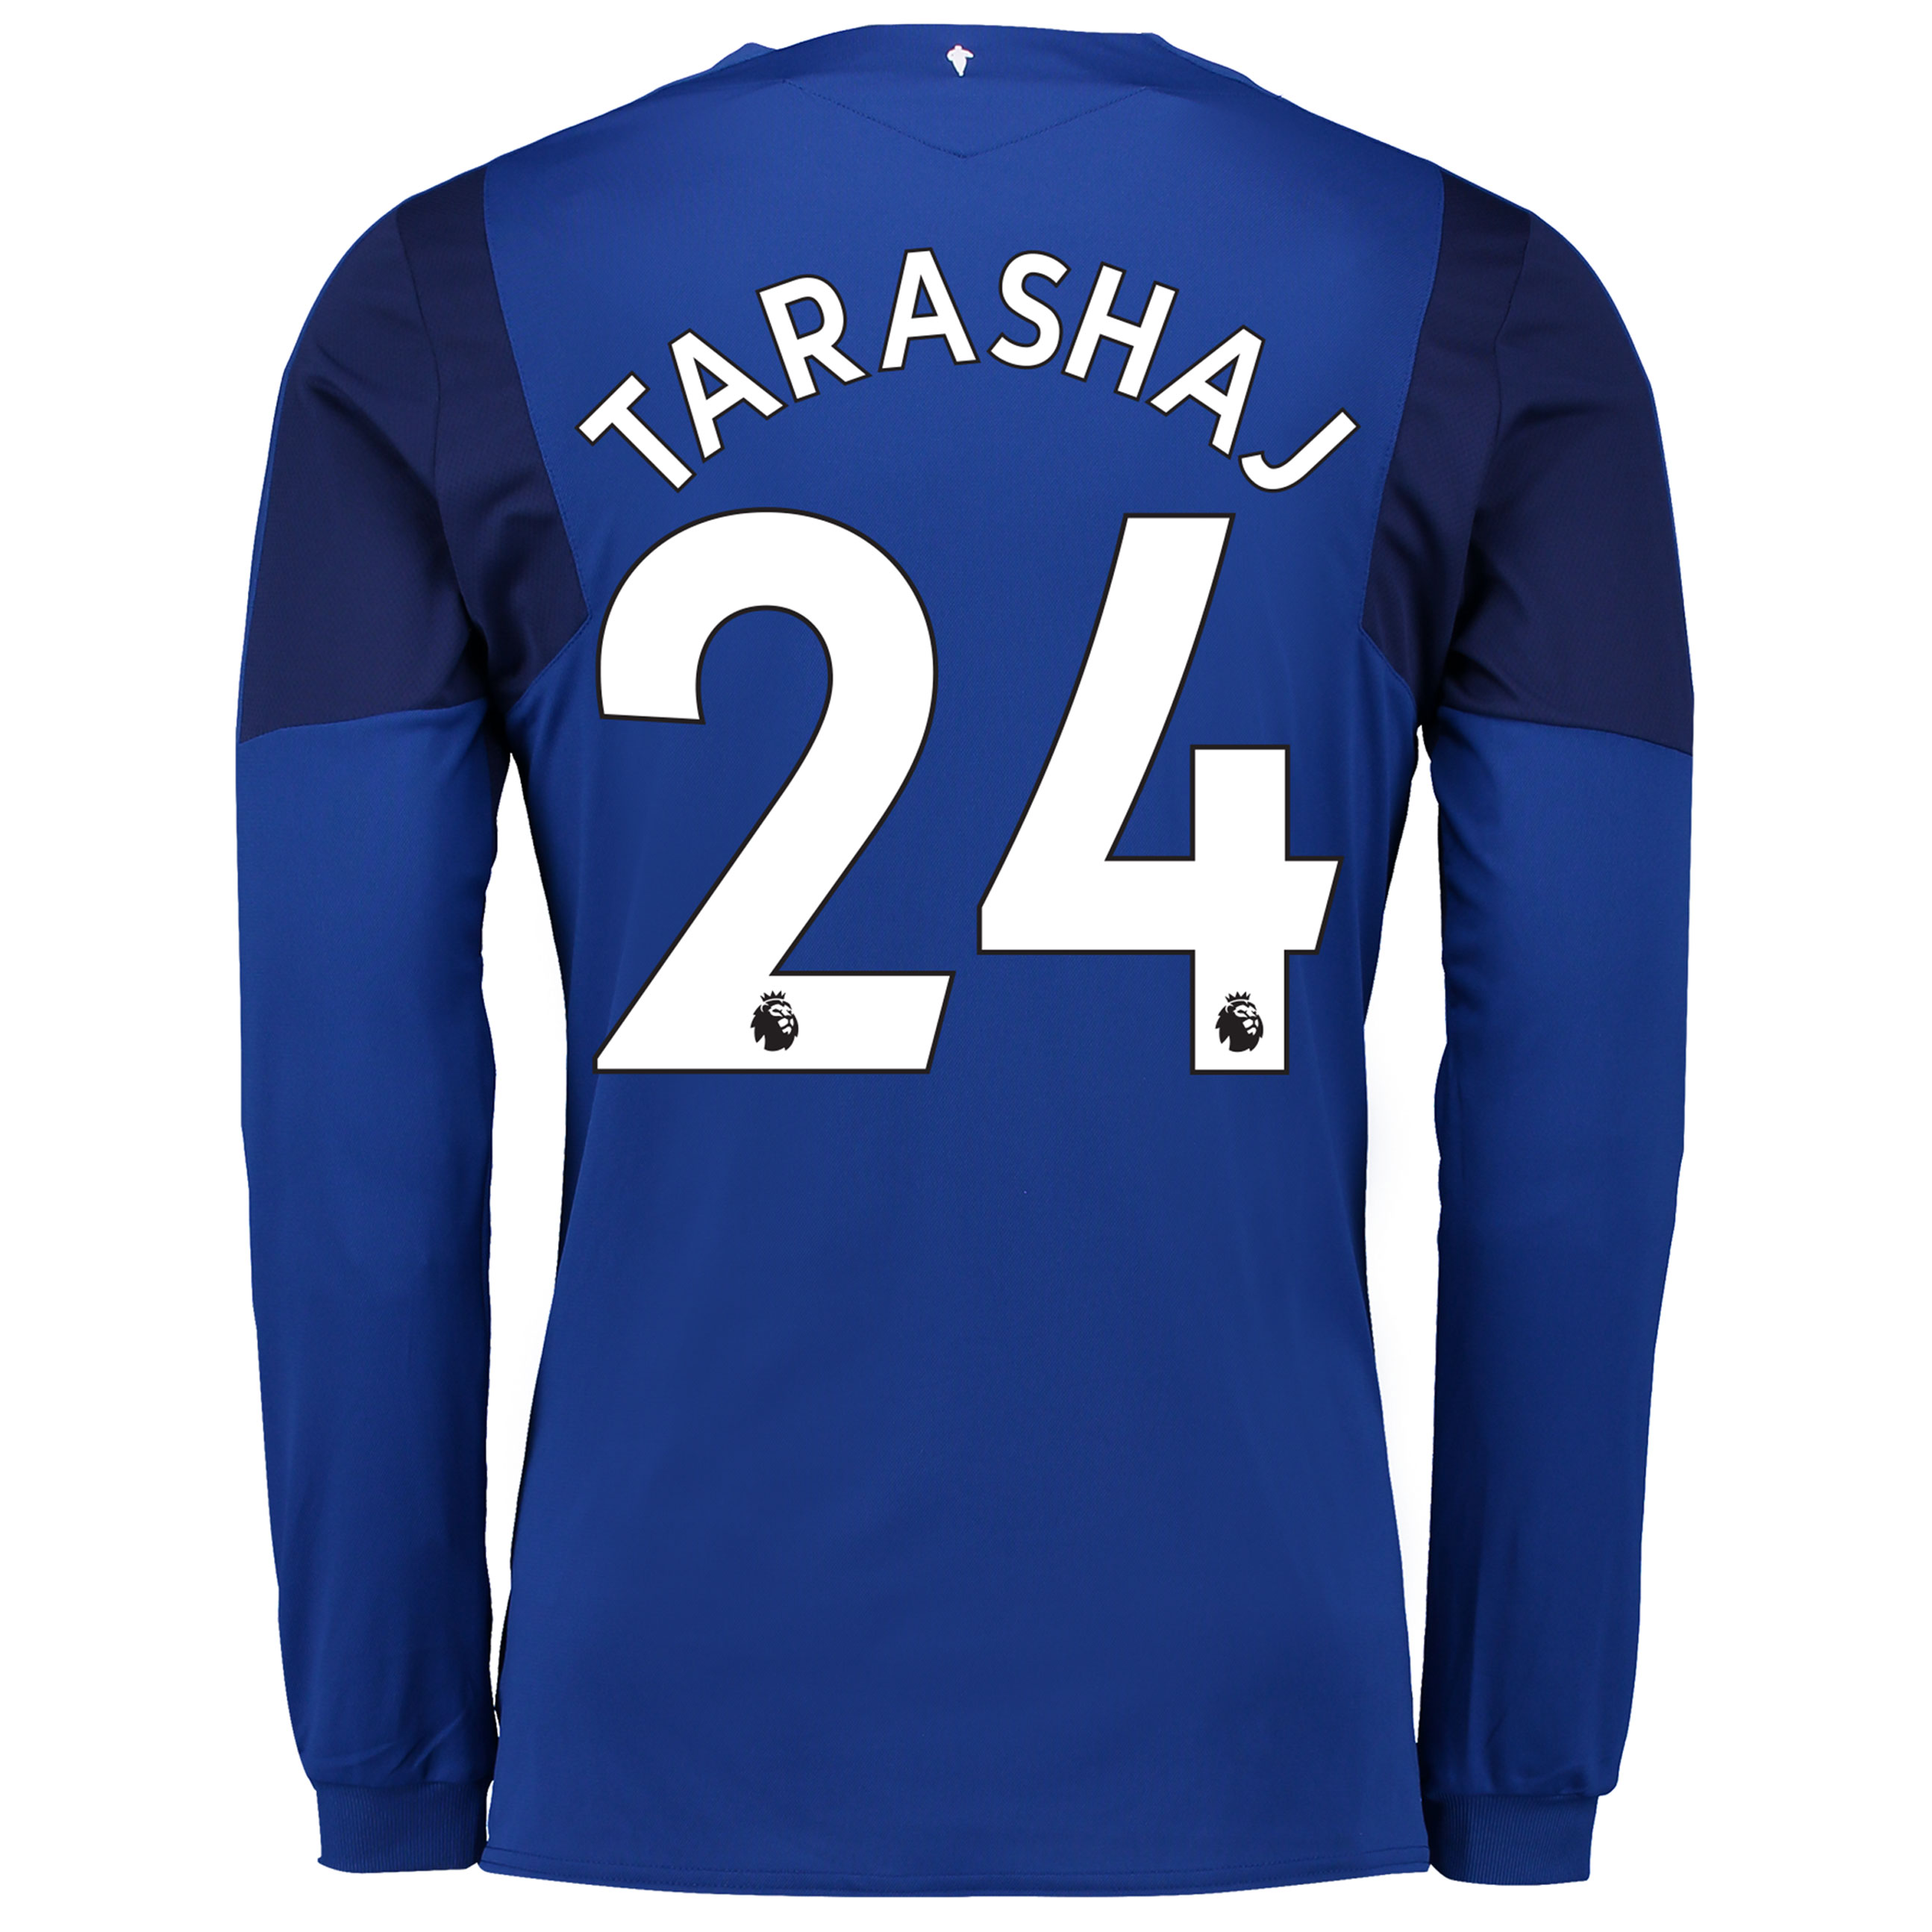 Everton Home Shirt 2017/18 - Junior - Long Sleeved with Tarashaj 24 pr